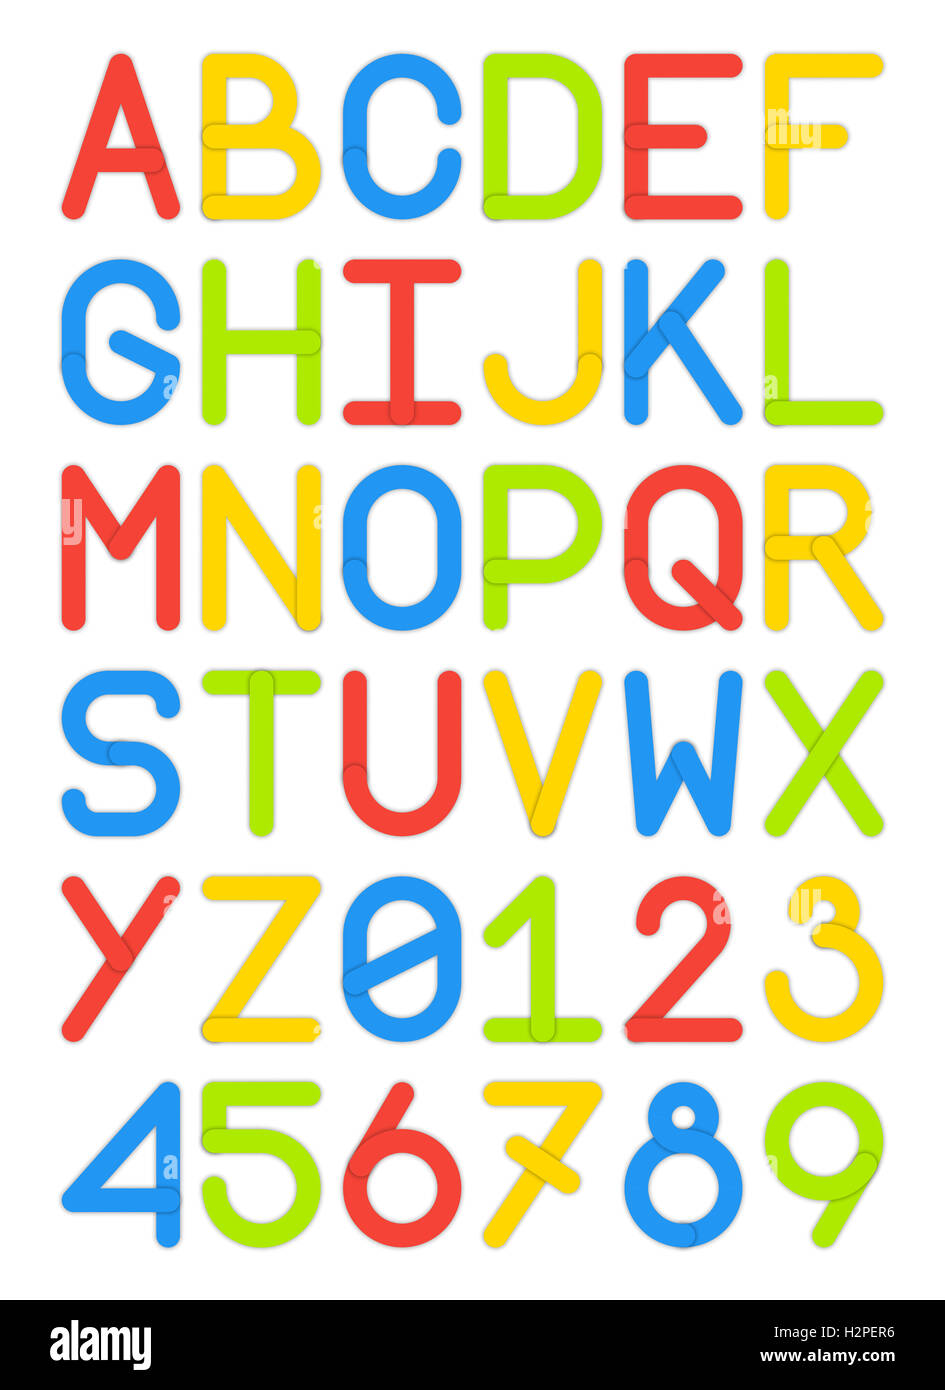 JPEG English Font Typeface Capital Letters And Numbers Modern Style Sans Serif Colorful Red Yellow Blue Green Illustration